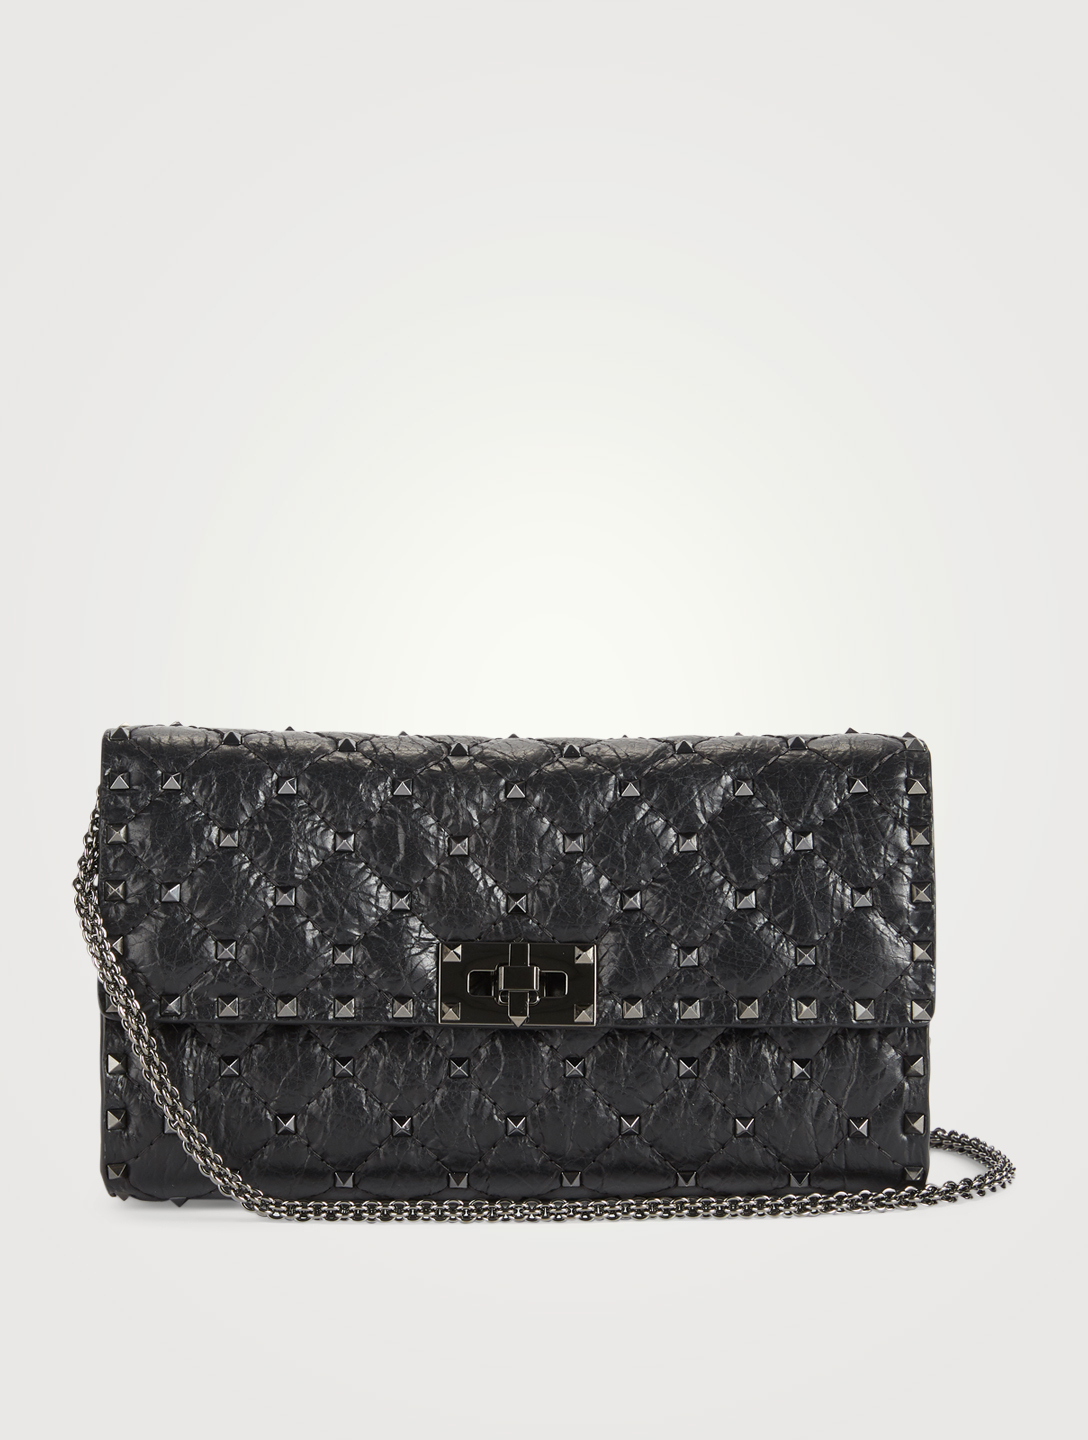 092ac18555 VALENTINO GARAVANI Rockstud Spike Cracked Leather Clutch Bag | Holt ...